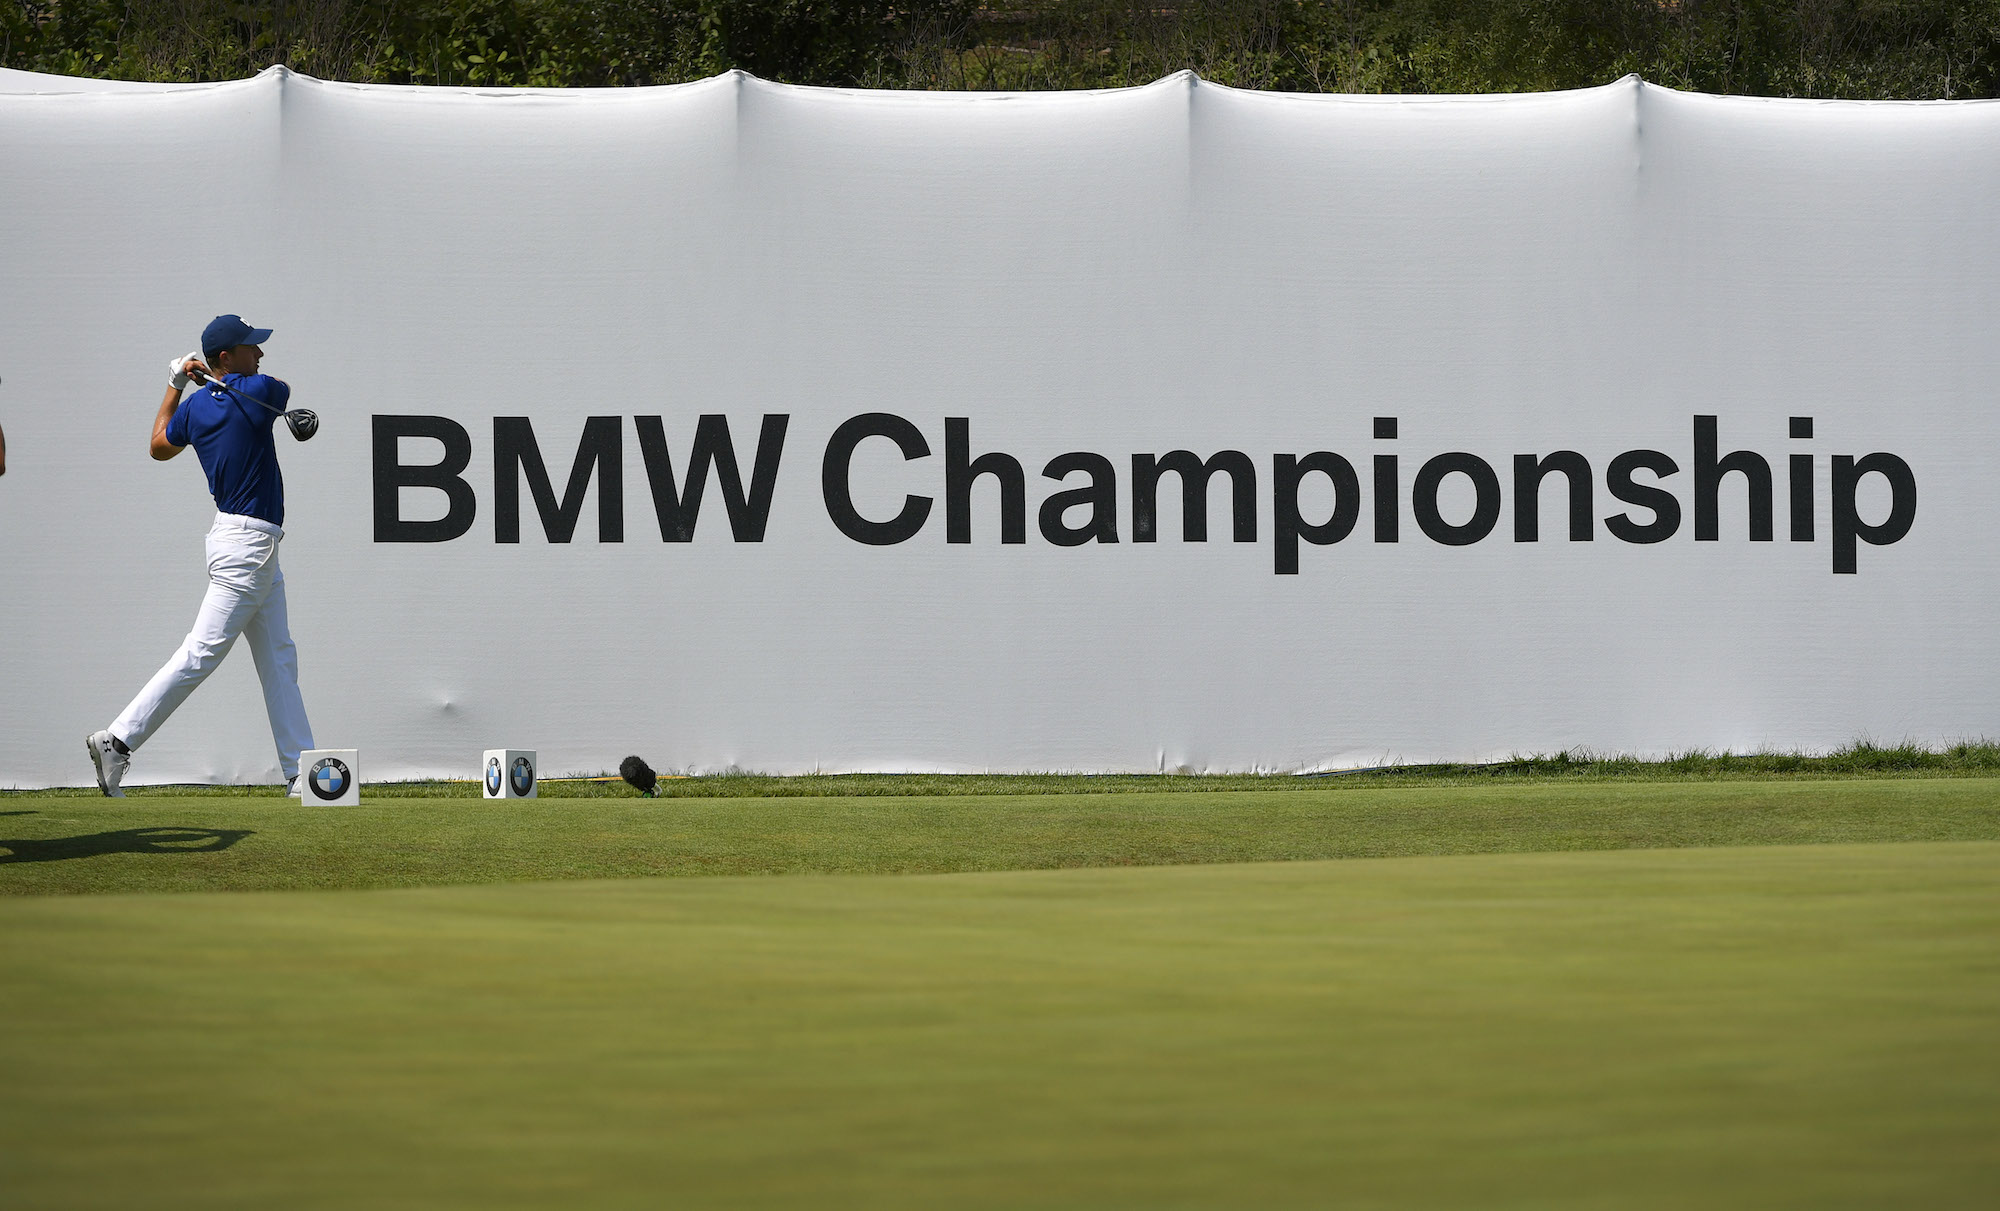 2018 BMW Championship: Round 1 - Teeing Off on No. 18